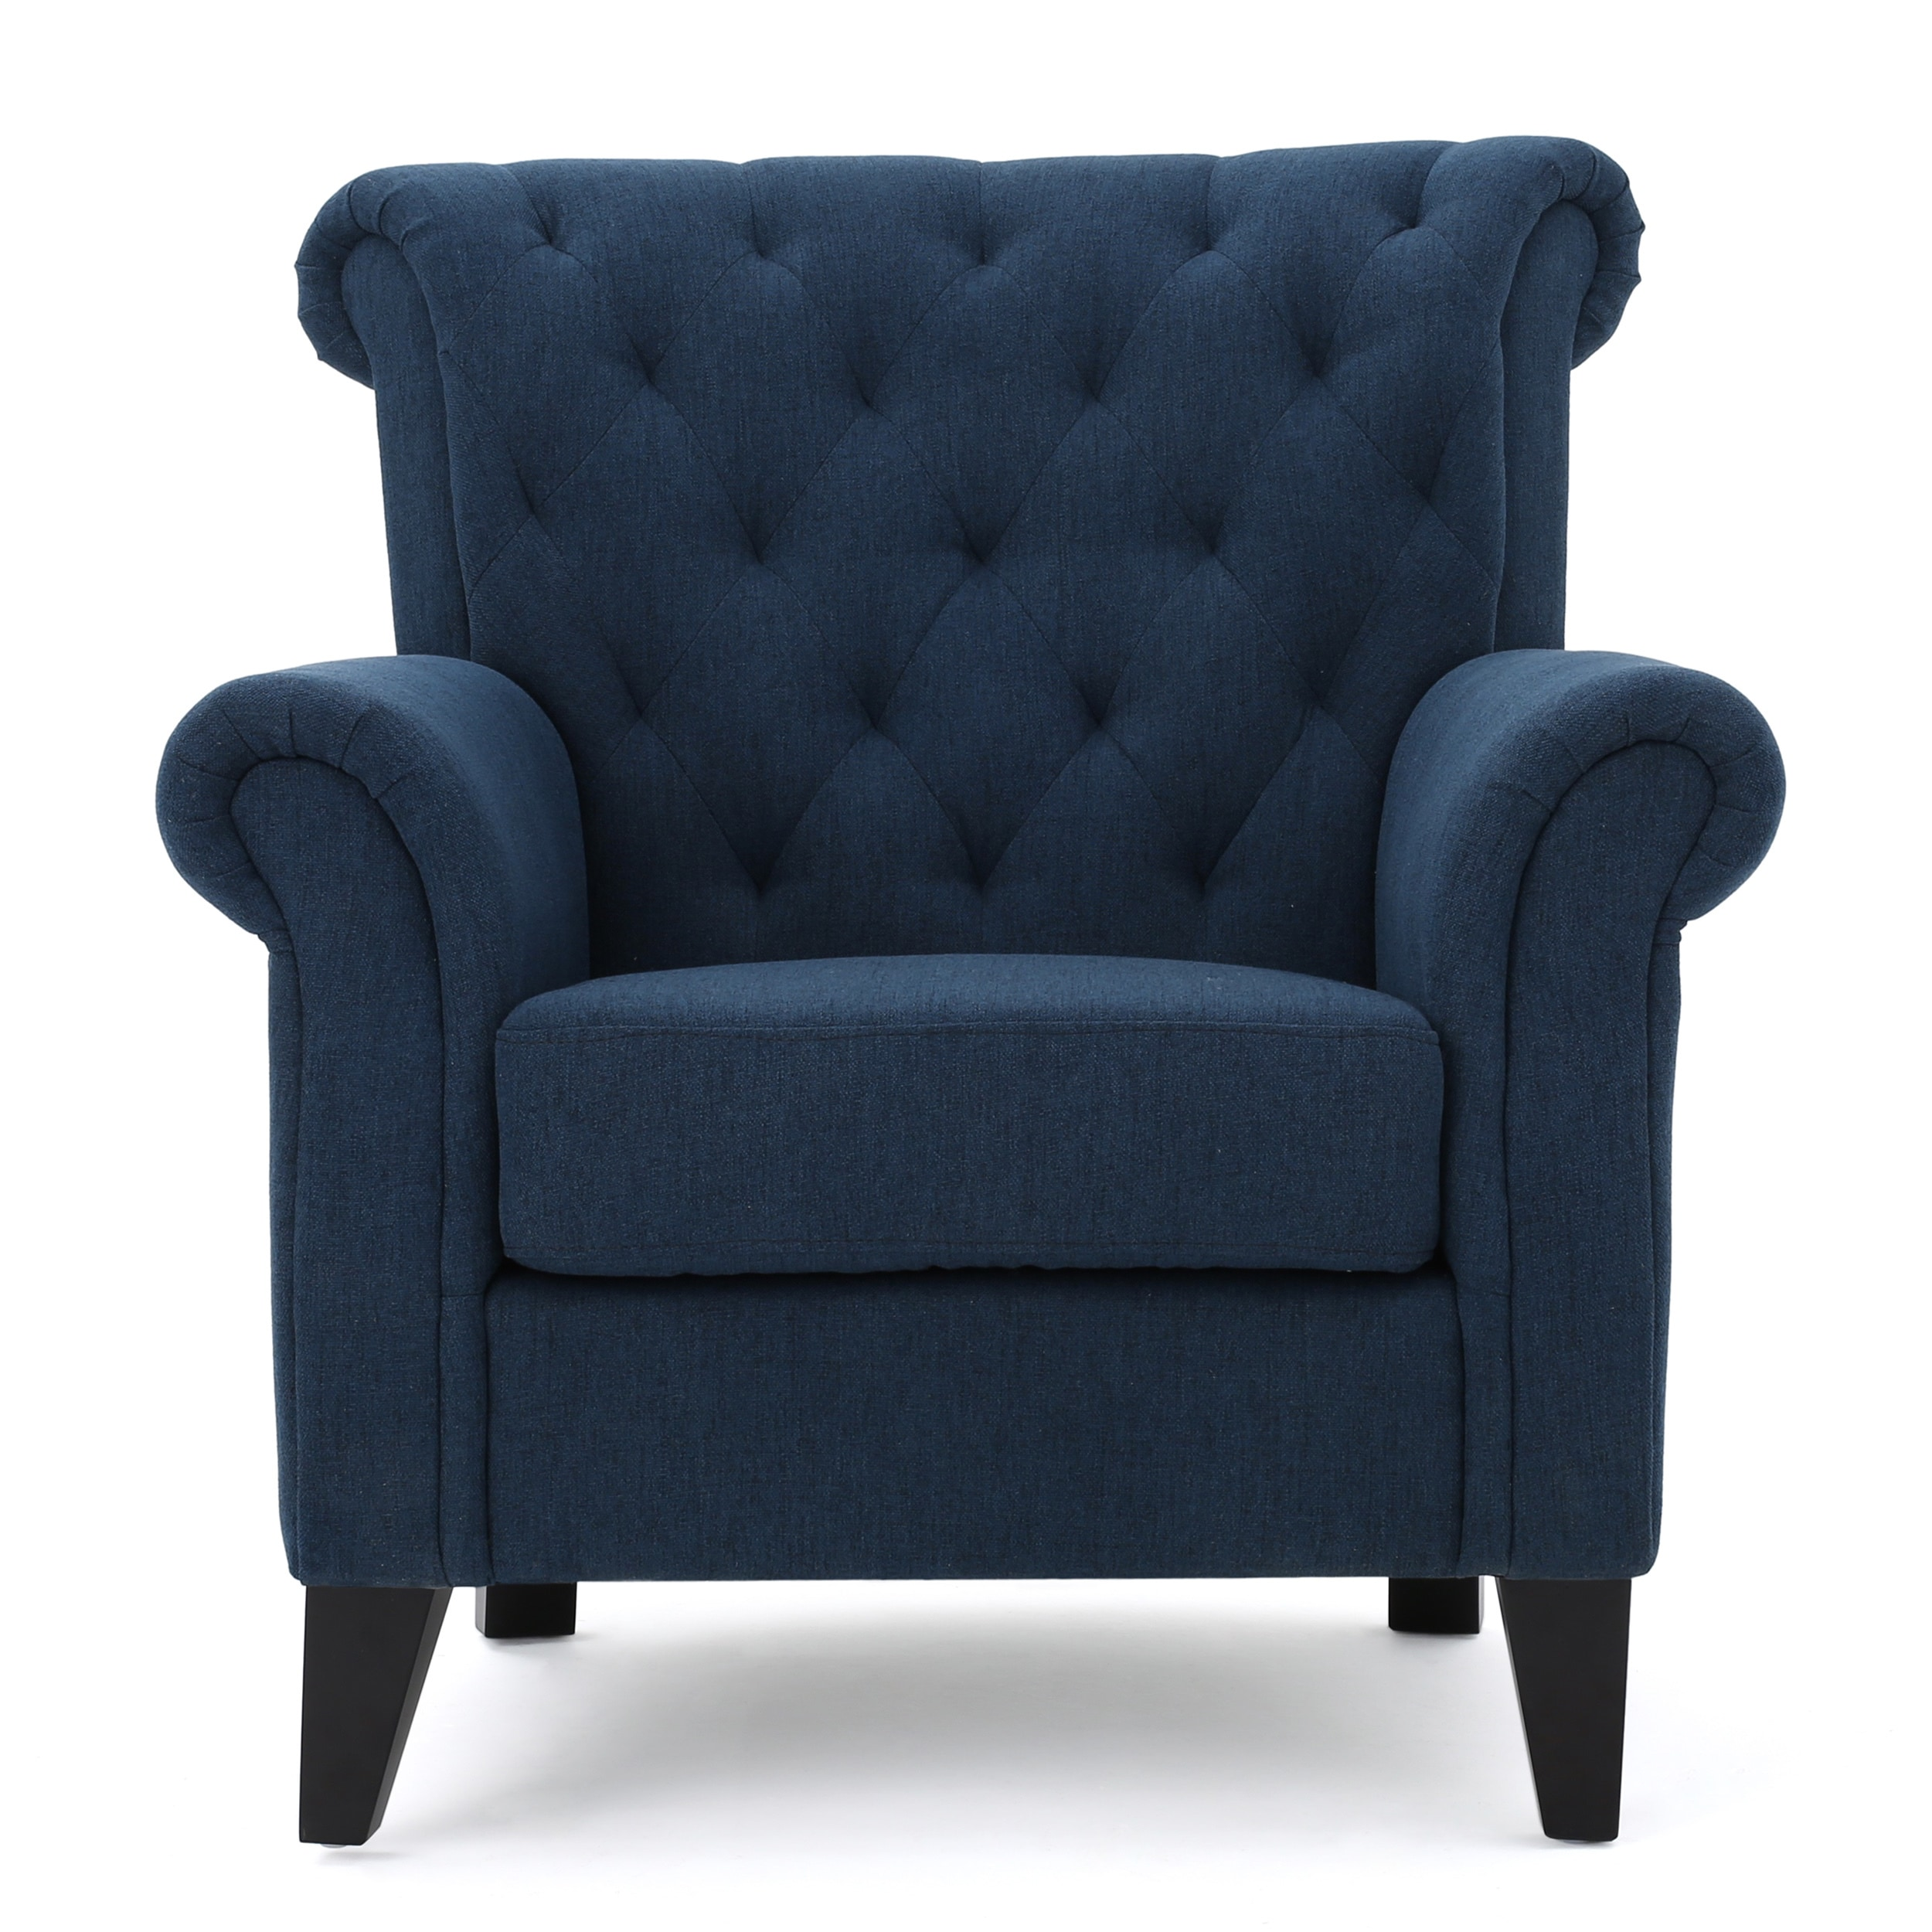 Merritt High Back Tufted Fabric Club Chair By Christopher Knight Home Free Shipping Today 13683481